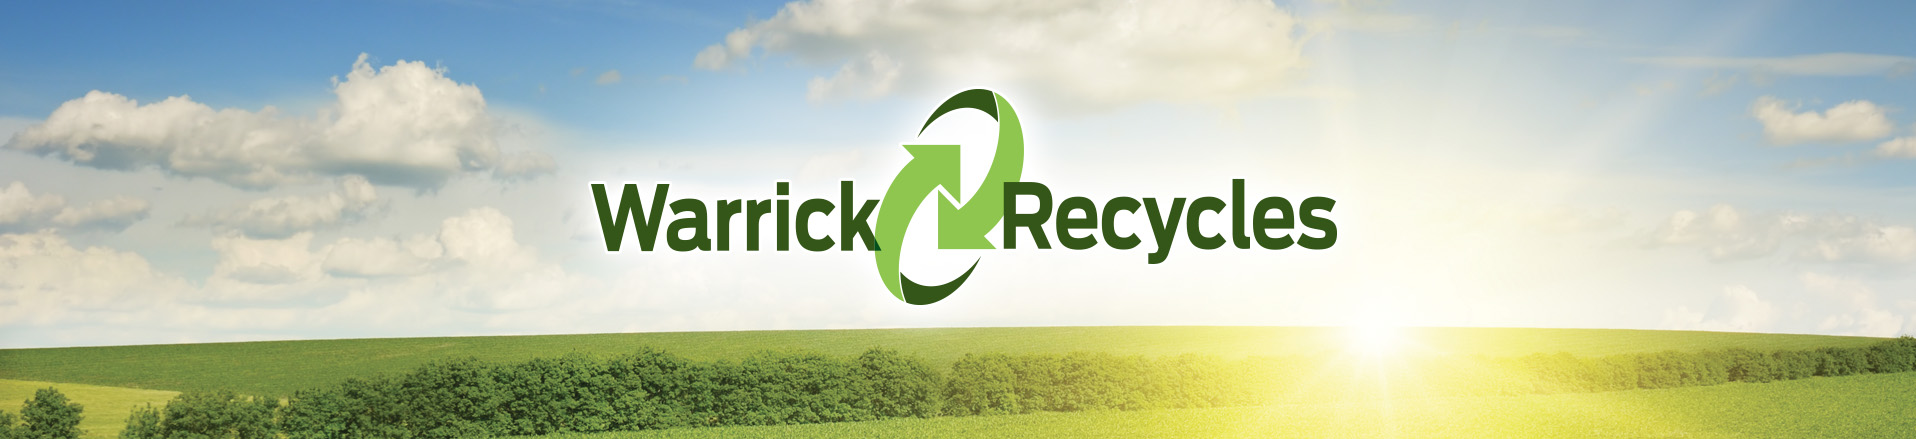 Warrick Recycles